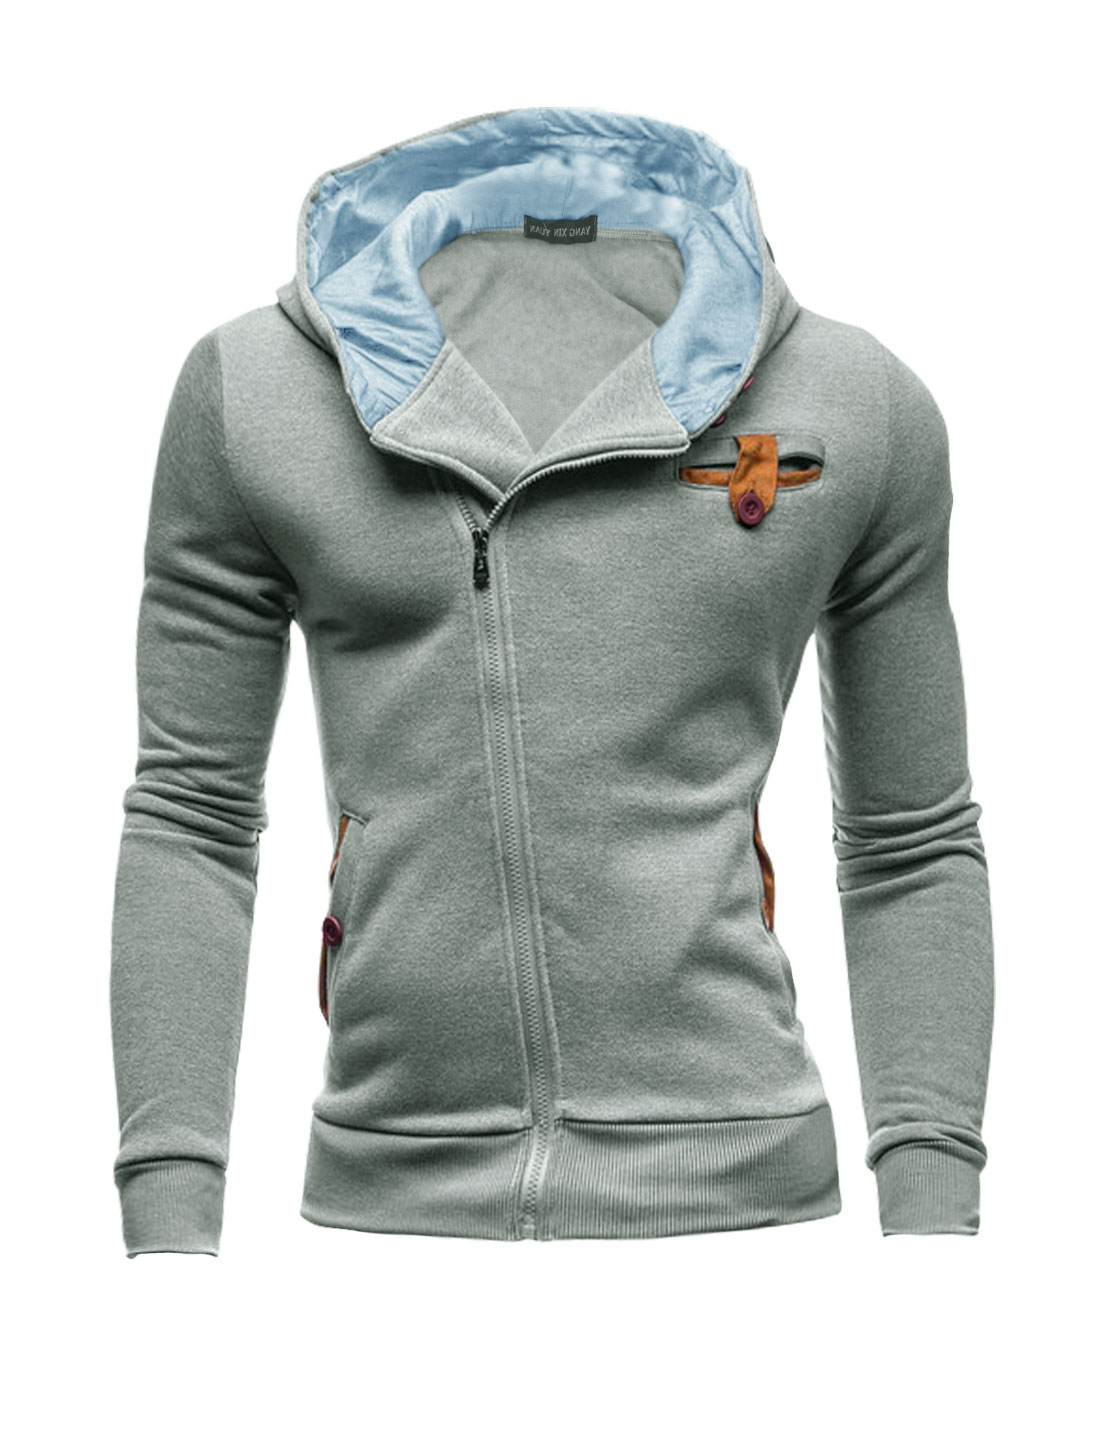 Men Full Zip Two Pockets Elbow Patch Hooded Jacket Light Gray M